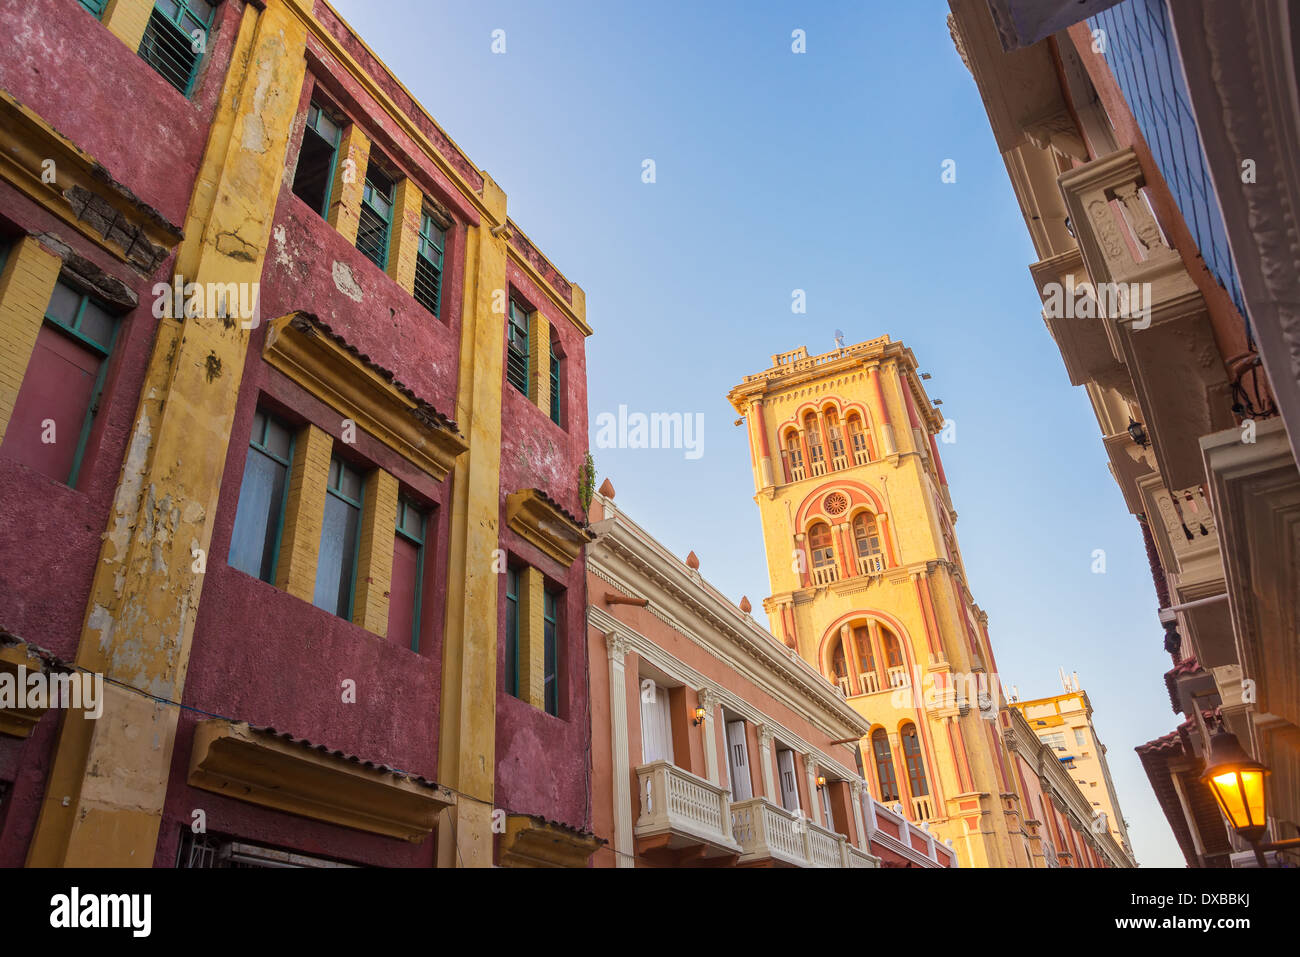 View of the tower of Cartagena Public University in the heart of the historic district of Cartagena, Colombia - Stock Image